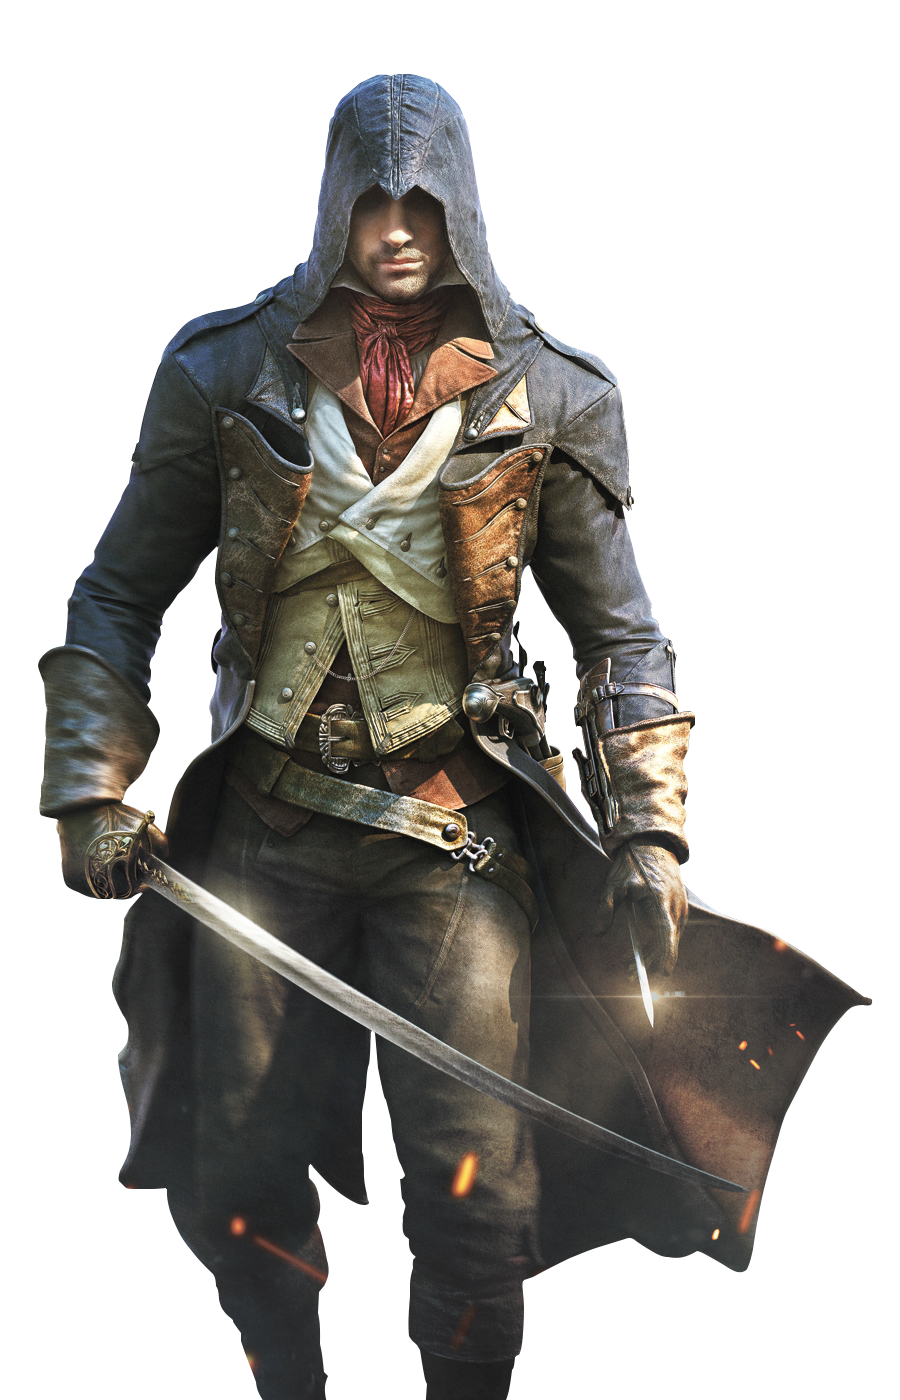 Knight Creed Unity Iv Flag Black Assassin PNG Image